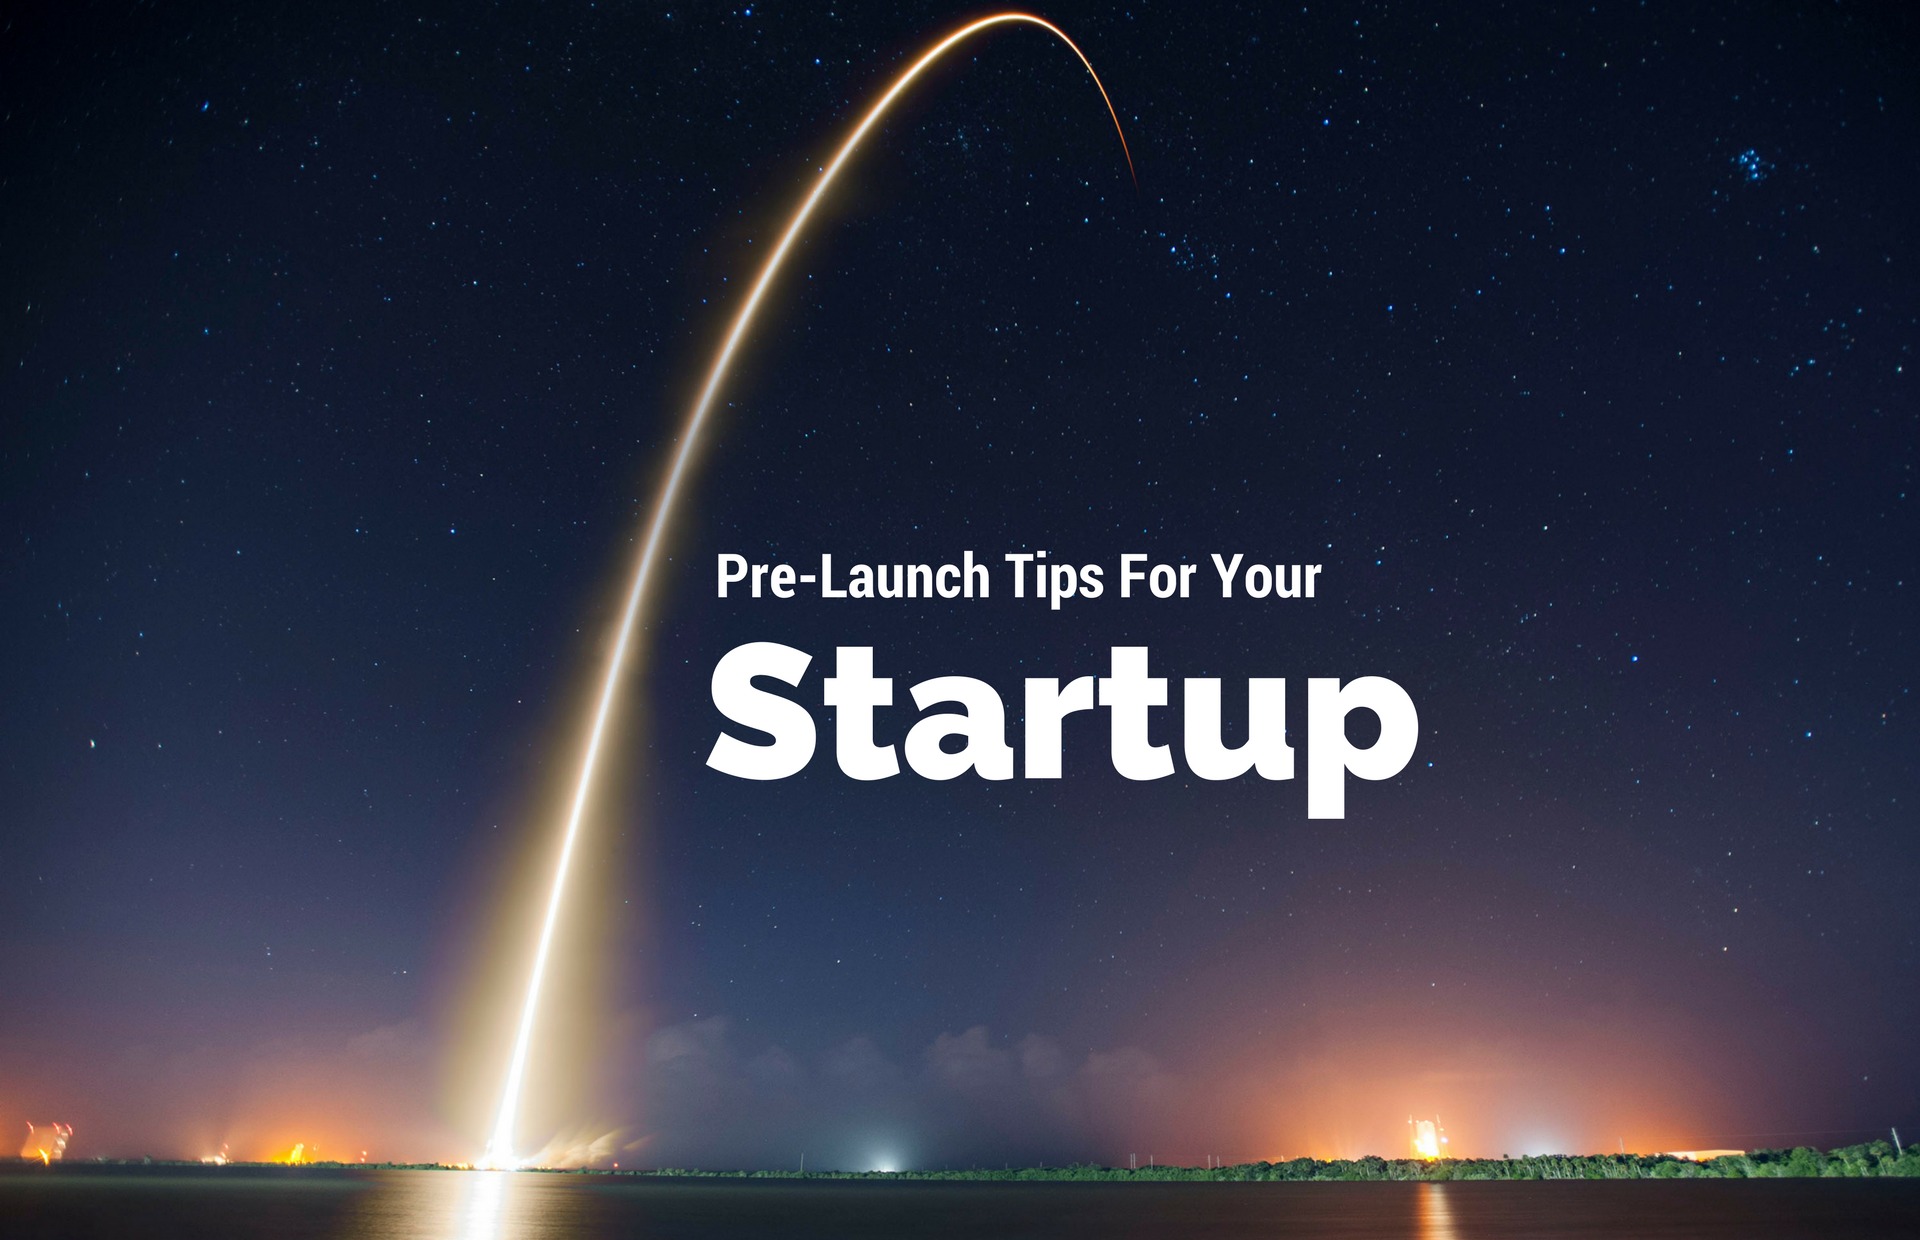 The complete list of actionable items to start building pre-launch buzz.